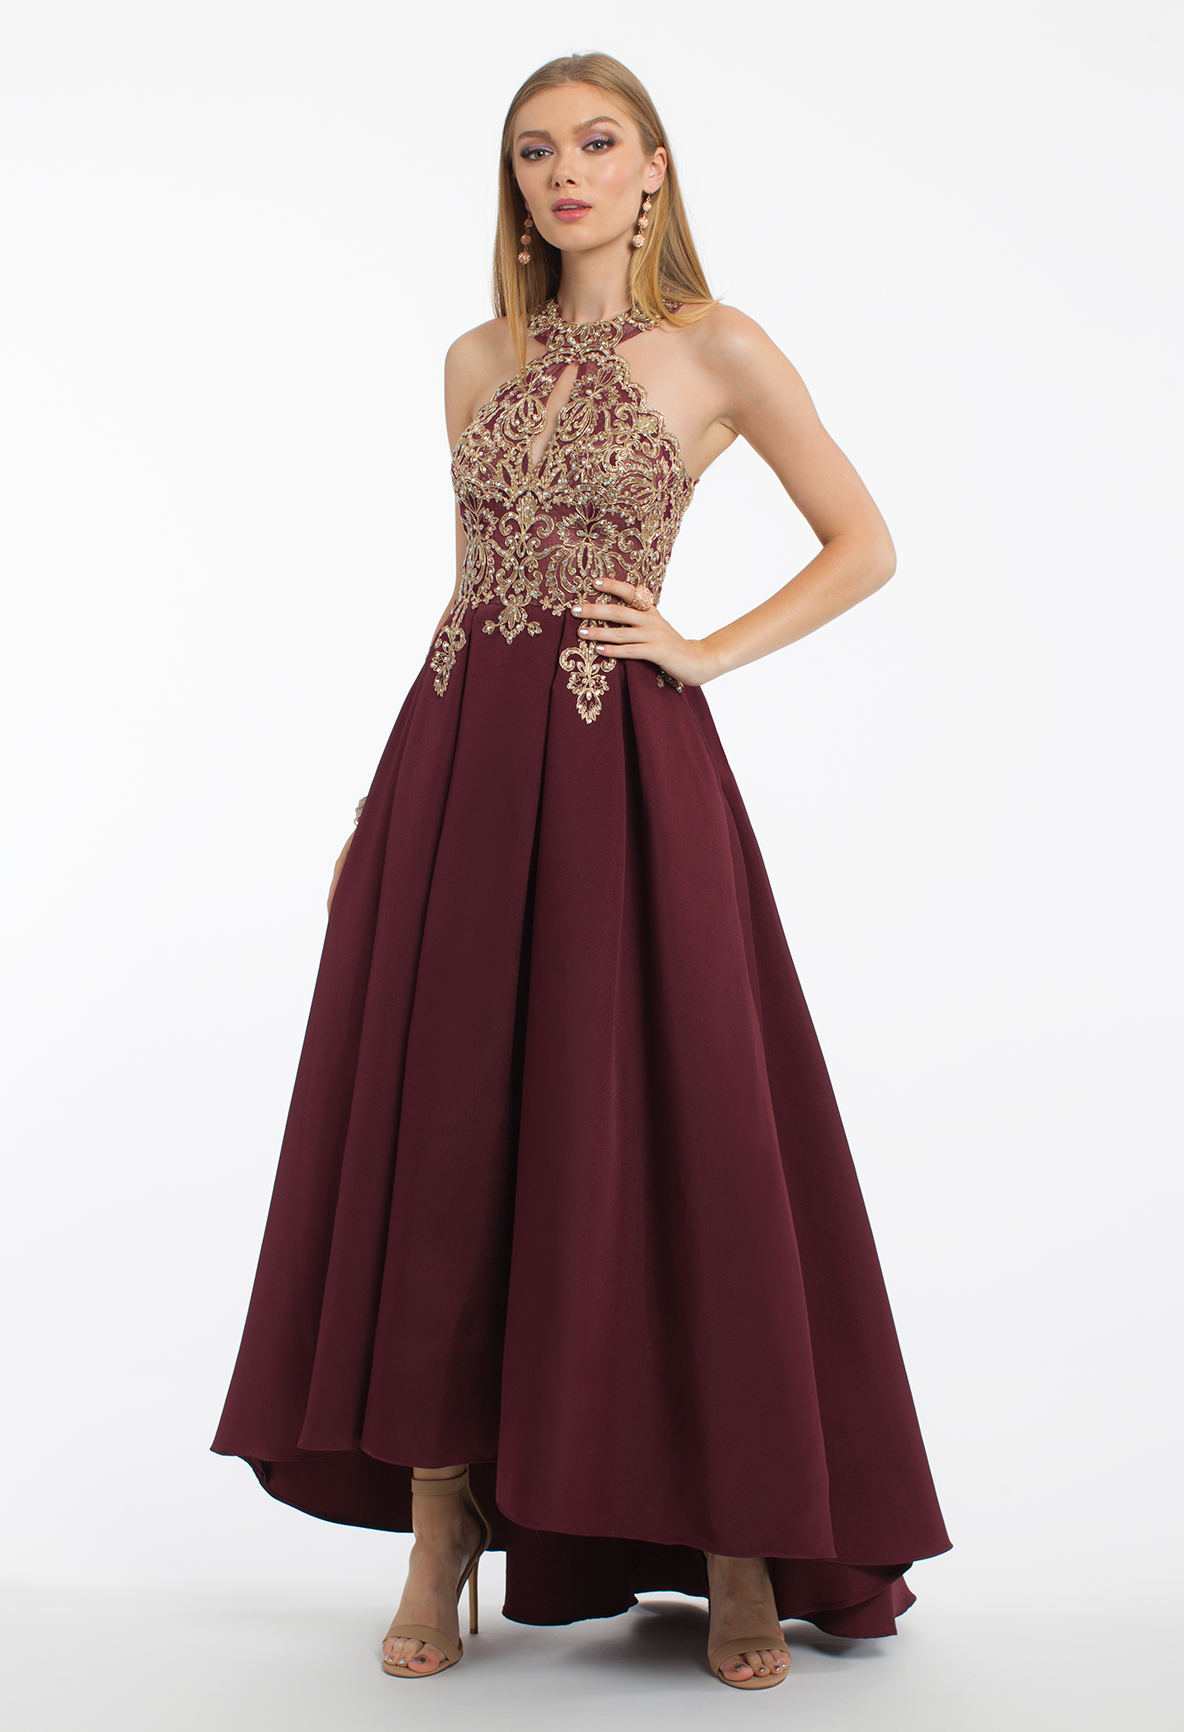 f5b3a46088a Talk about detail to die for  prep for prom or a winter wedding when you  add this formal evening gown your wardrobe. This high-low ballgown